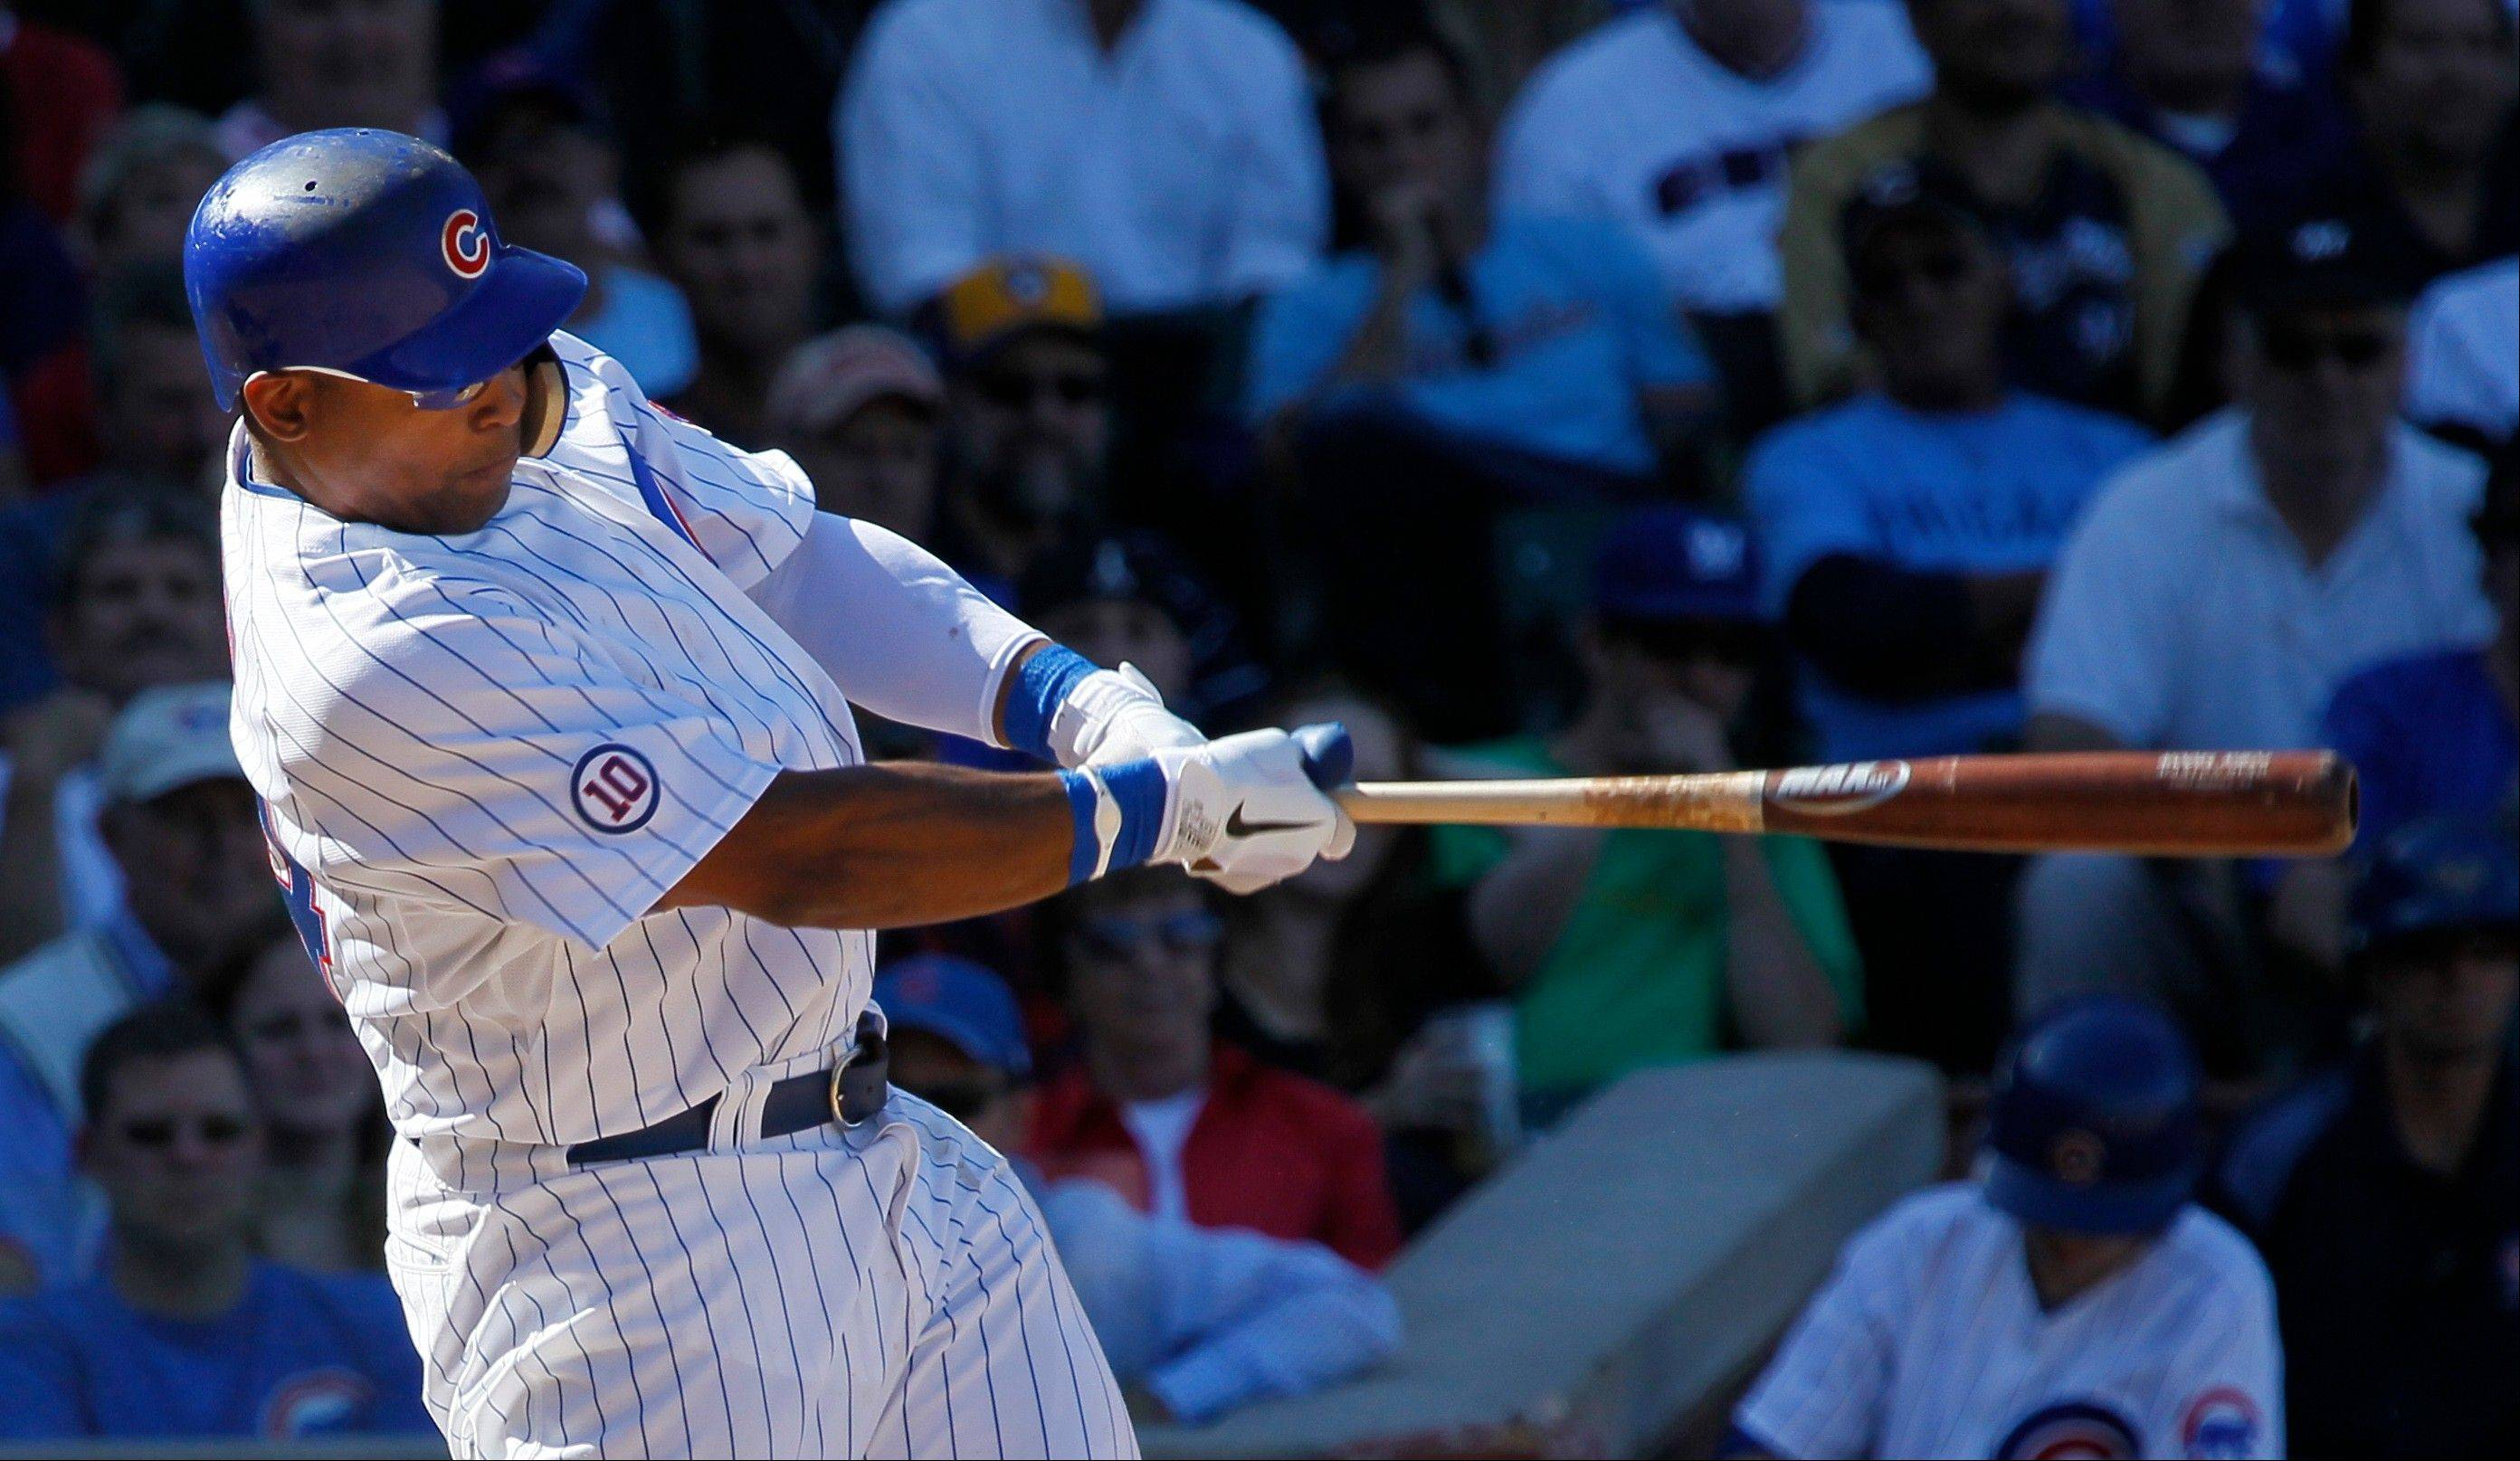 The Cubs' Marlon Byrd hits a 3-run home run during the sixth inning Wednesday.